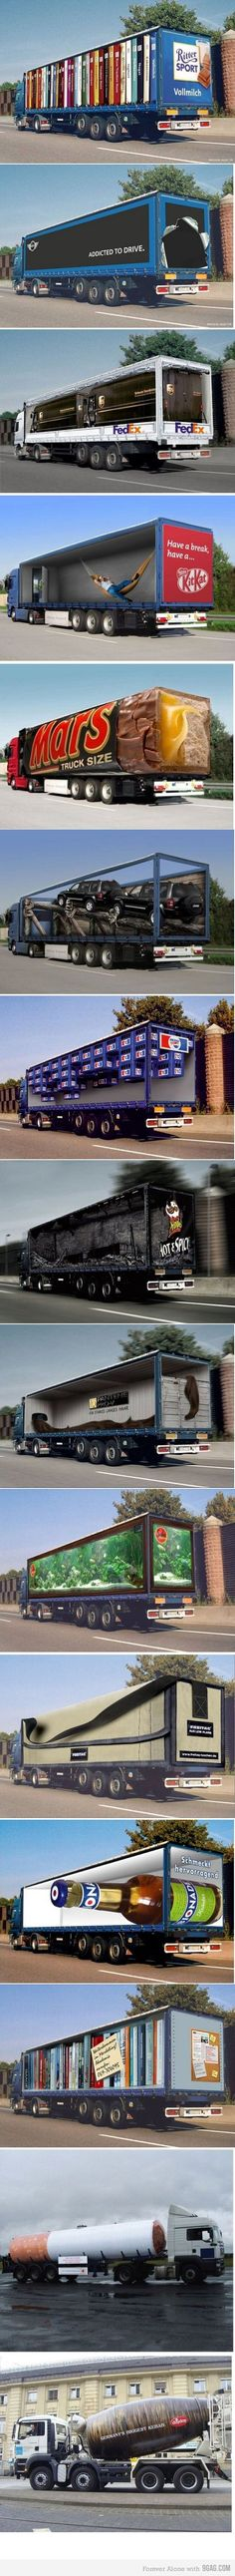 Awesome truck advertising !!